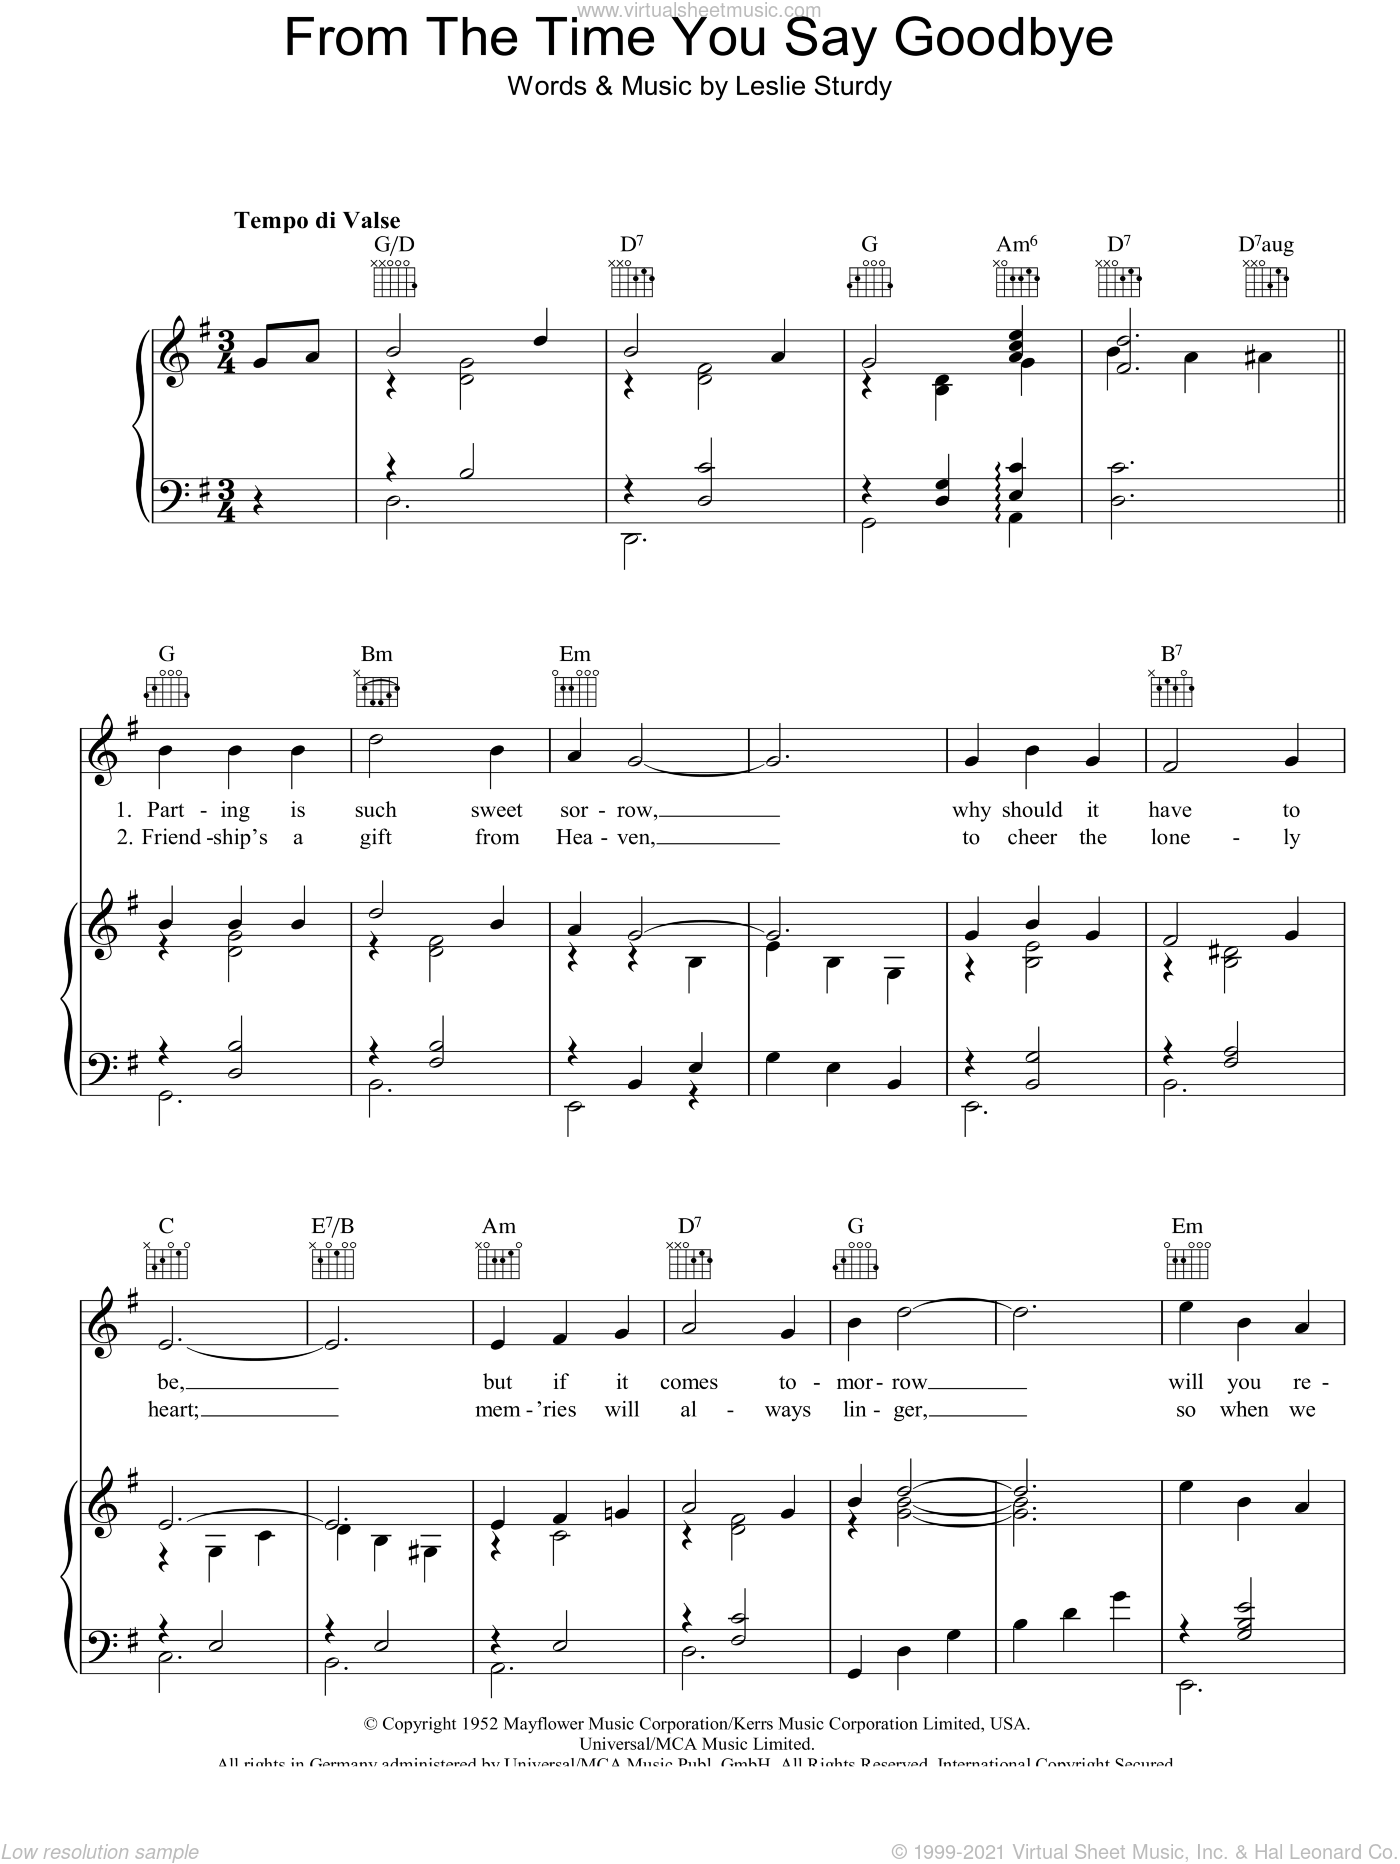 From The Time You Say Goodbye sheet music for voice, piano or guitar by Vera Lynn and Leslie Sturdy, intermediate skill level